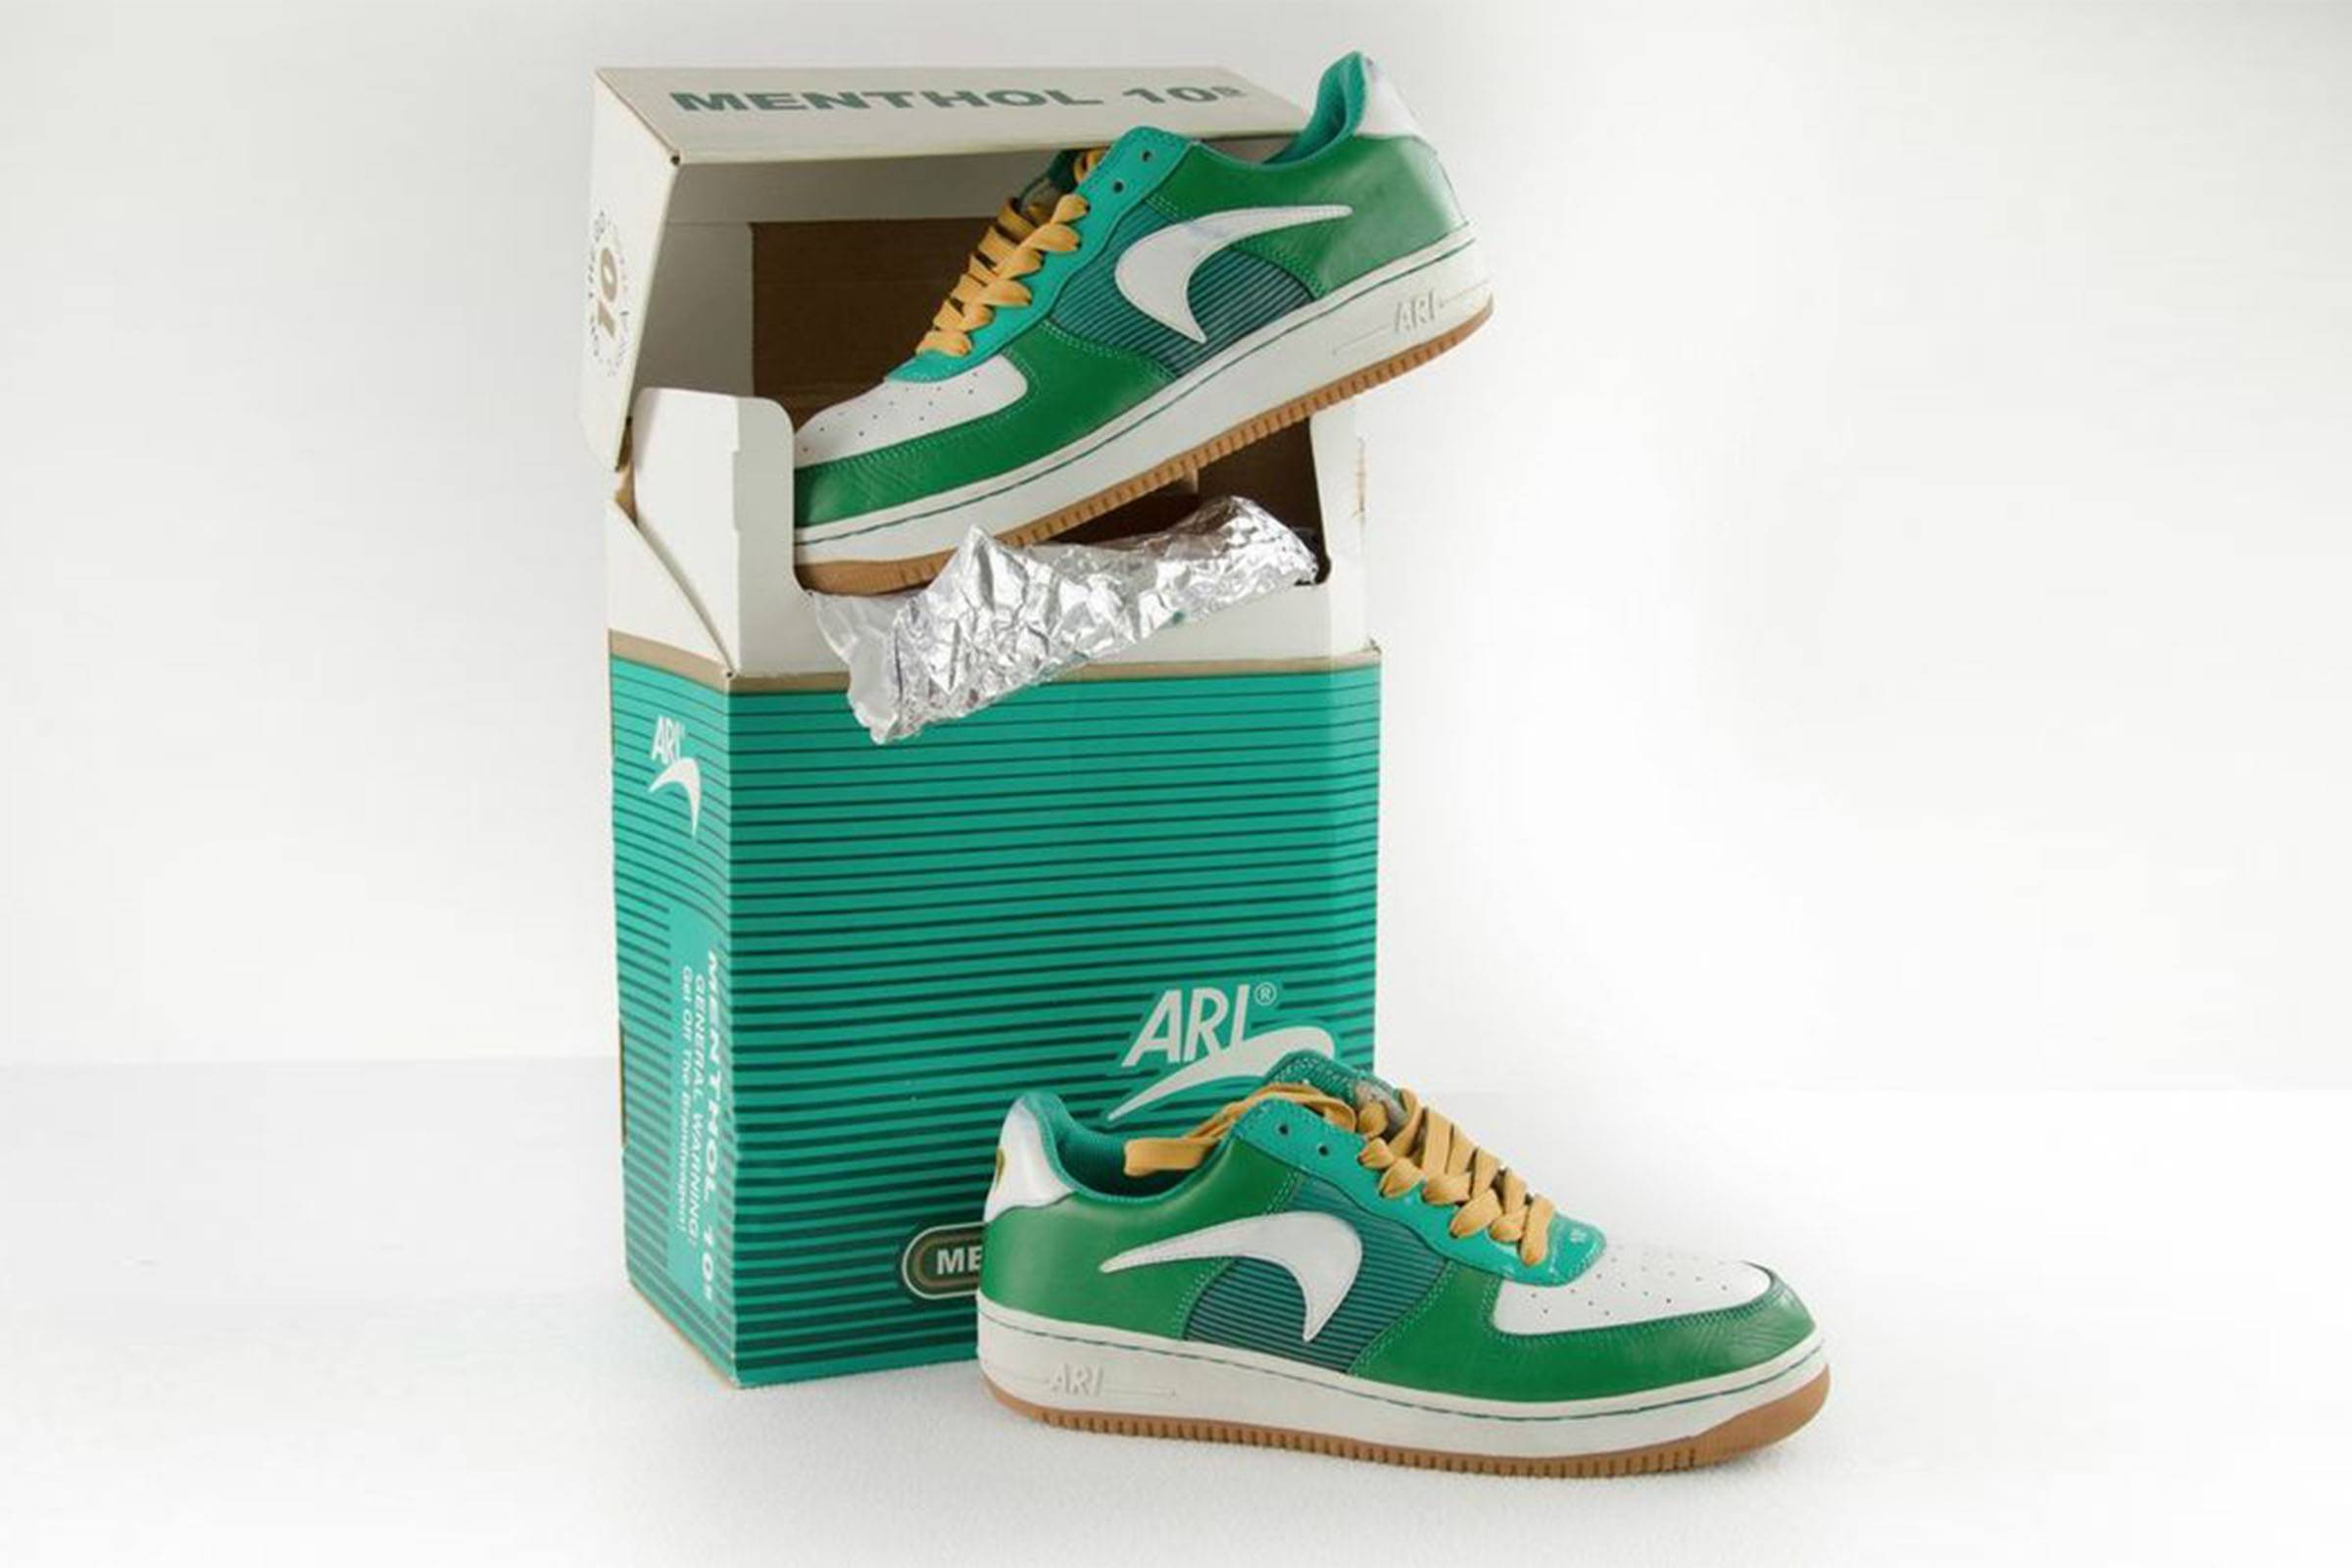 54aa9ac3a67 A Few of Our Favorite Air Force 1 Grails - Air Force 1 Grails - Grailed